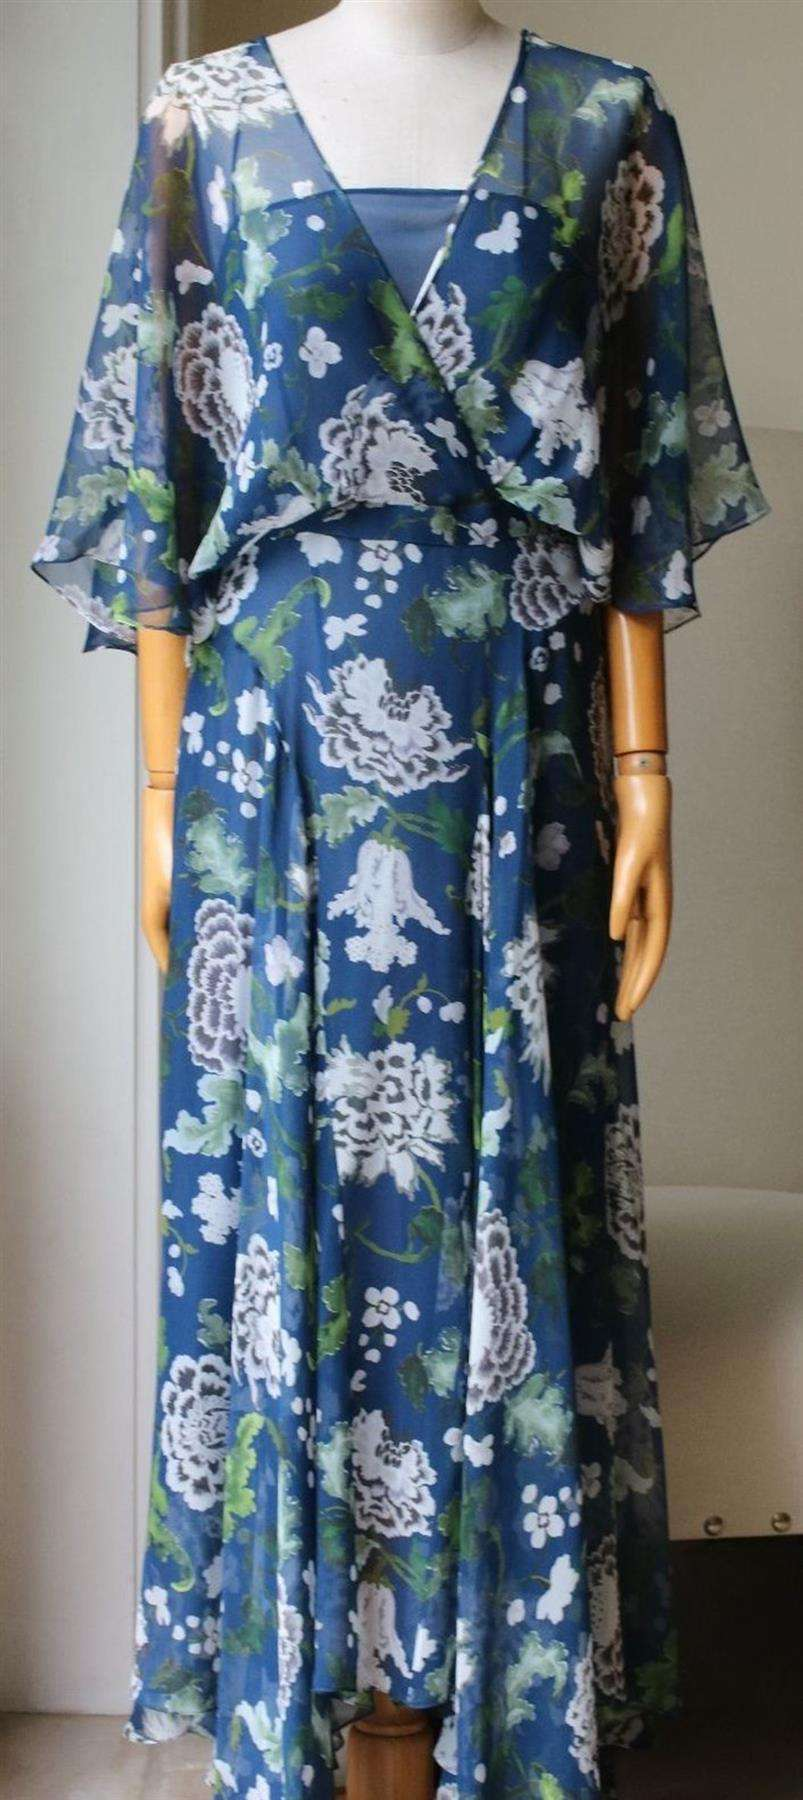 ADAM LIPPES FLORAL PRINT SILK CHIFFON MAXI DRESS US 2 UK 6